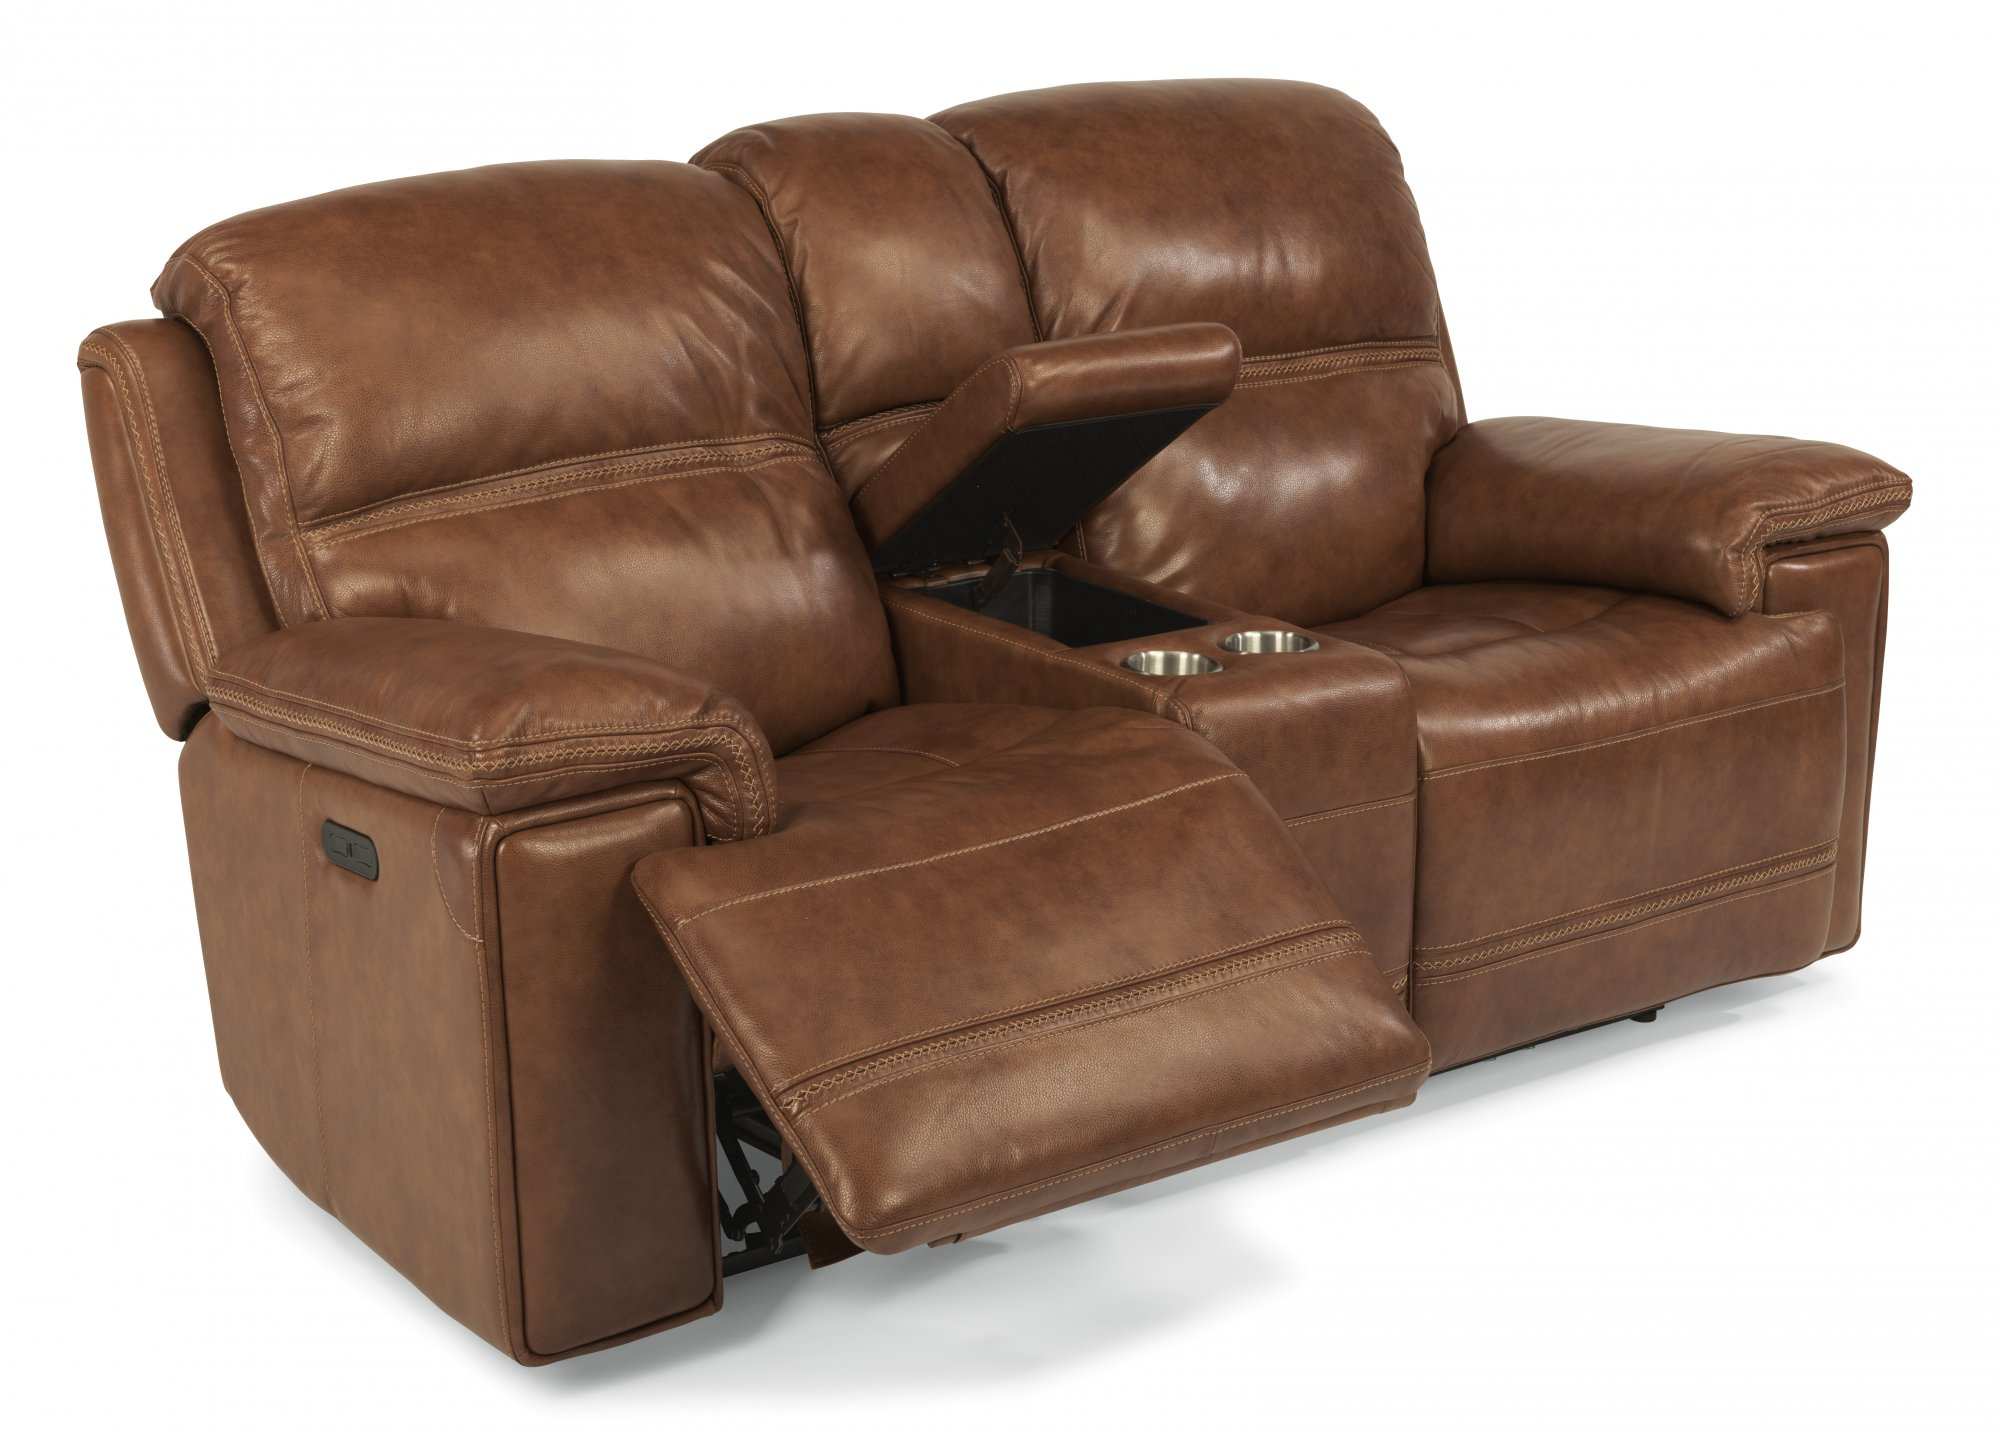 Flexsteel Fenwick  Leather Power Reclining Loveseat with Console and Power Headrests